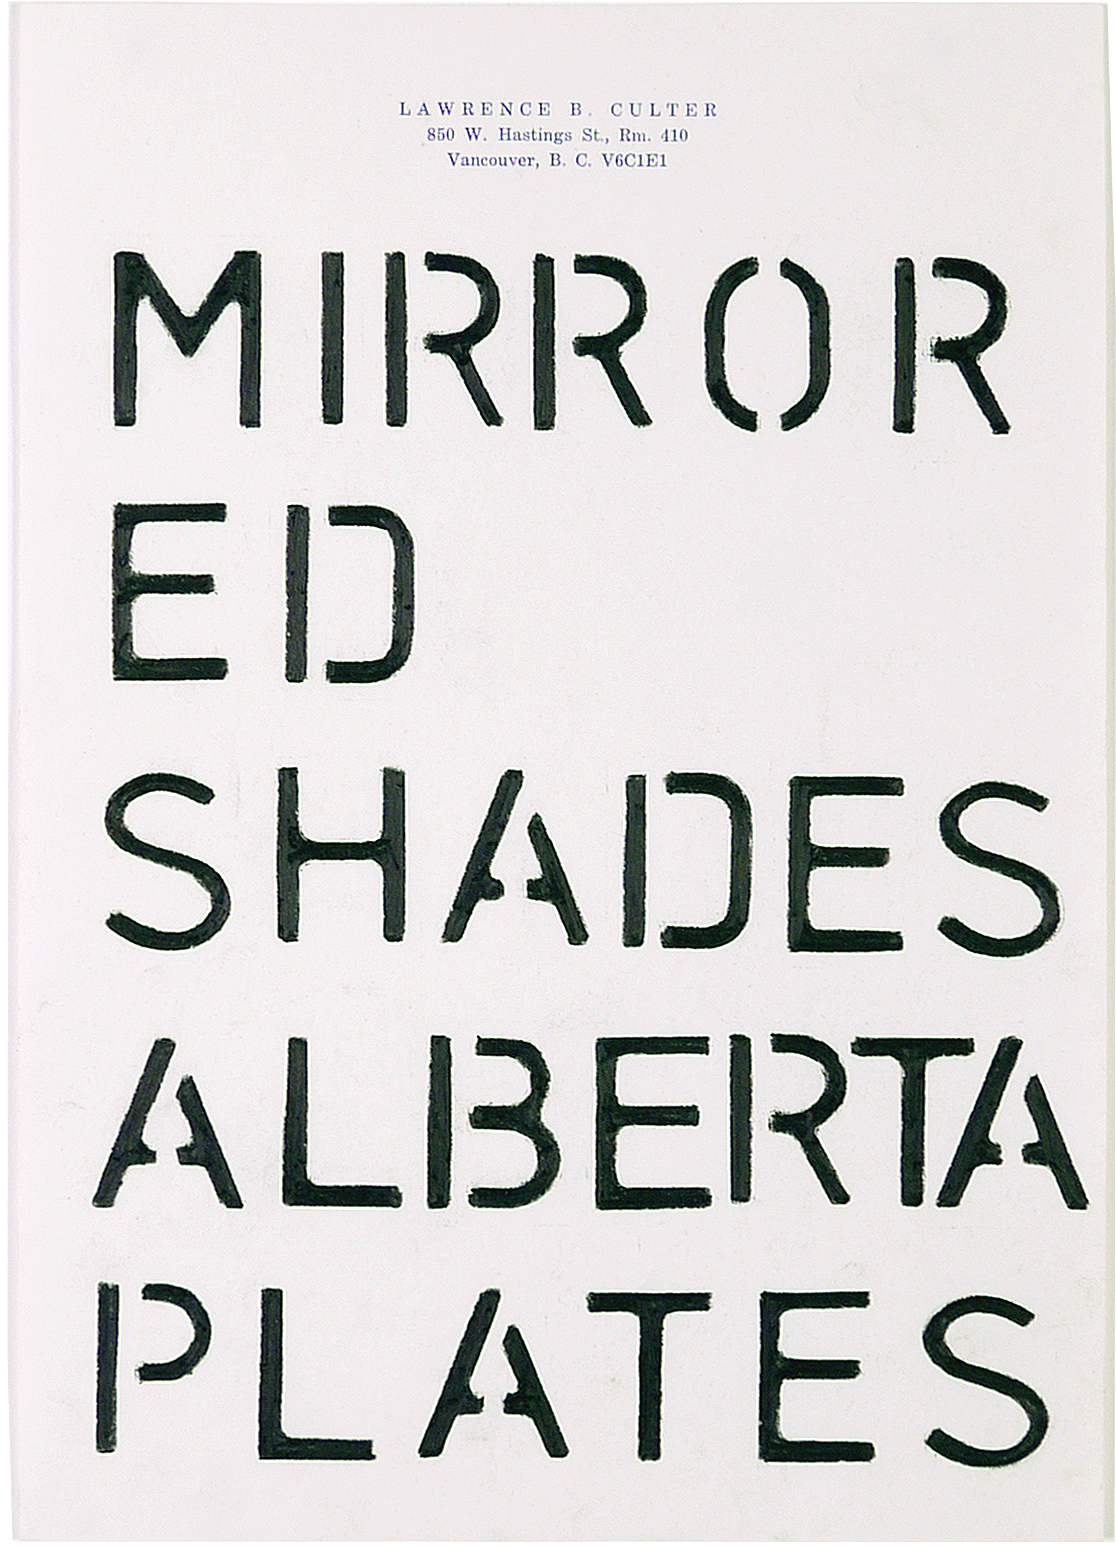 mirrored shades alberta plates  7.25 x 10.5 inches  pencil crayon on paper